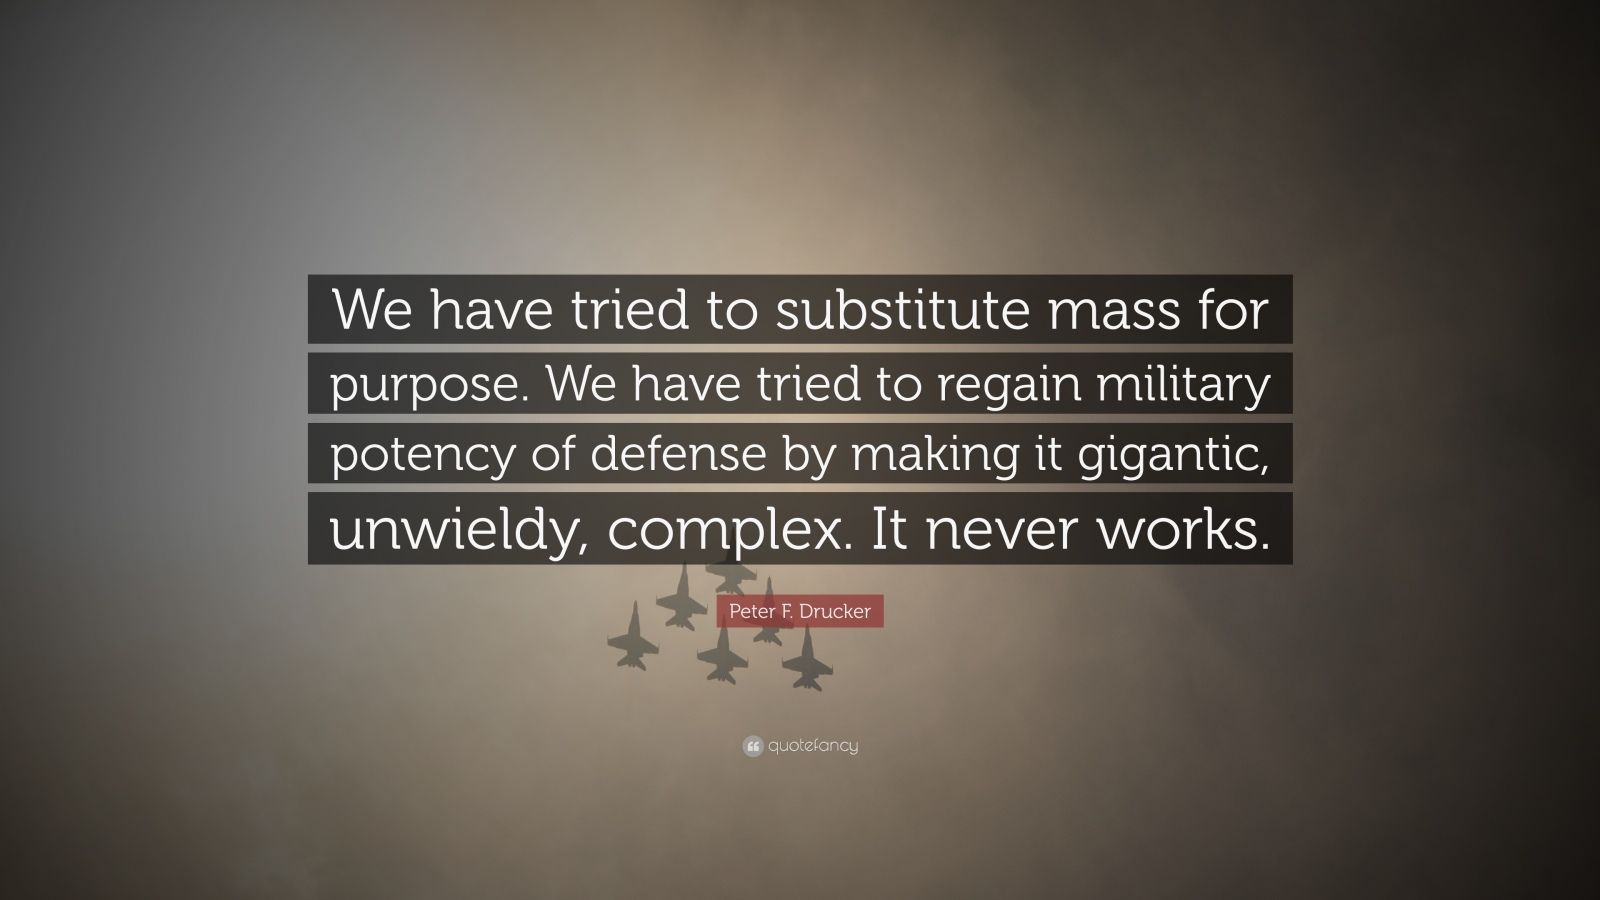 "Peter F. Drucker Quote: ""We have tried to substitute mass for purpose. We have tried to regain military potency of defense by making it gigantic, unwieldy, complex. It never works."""